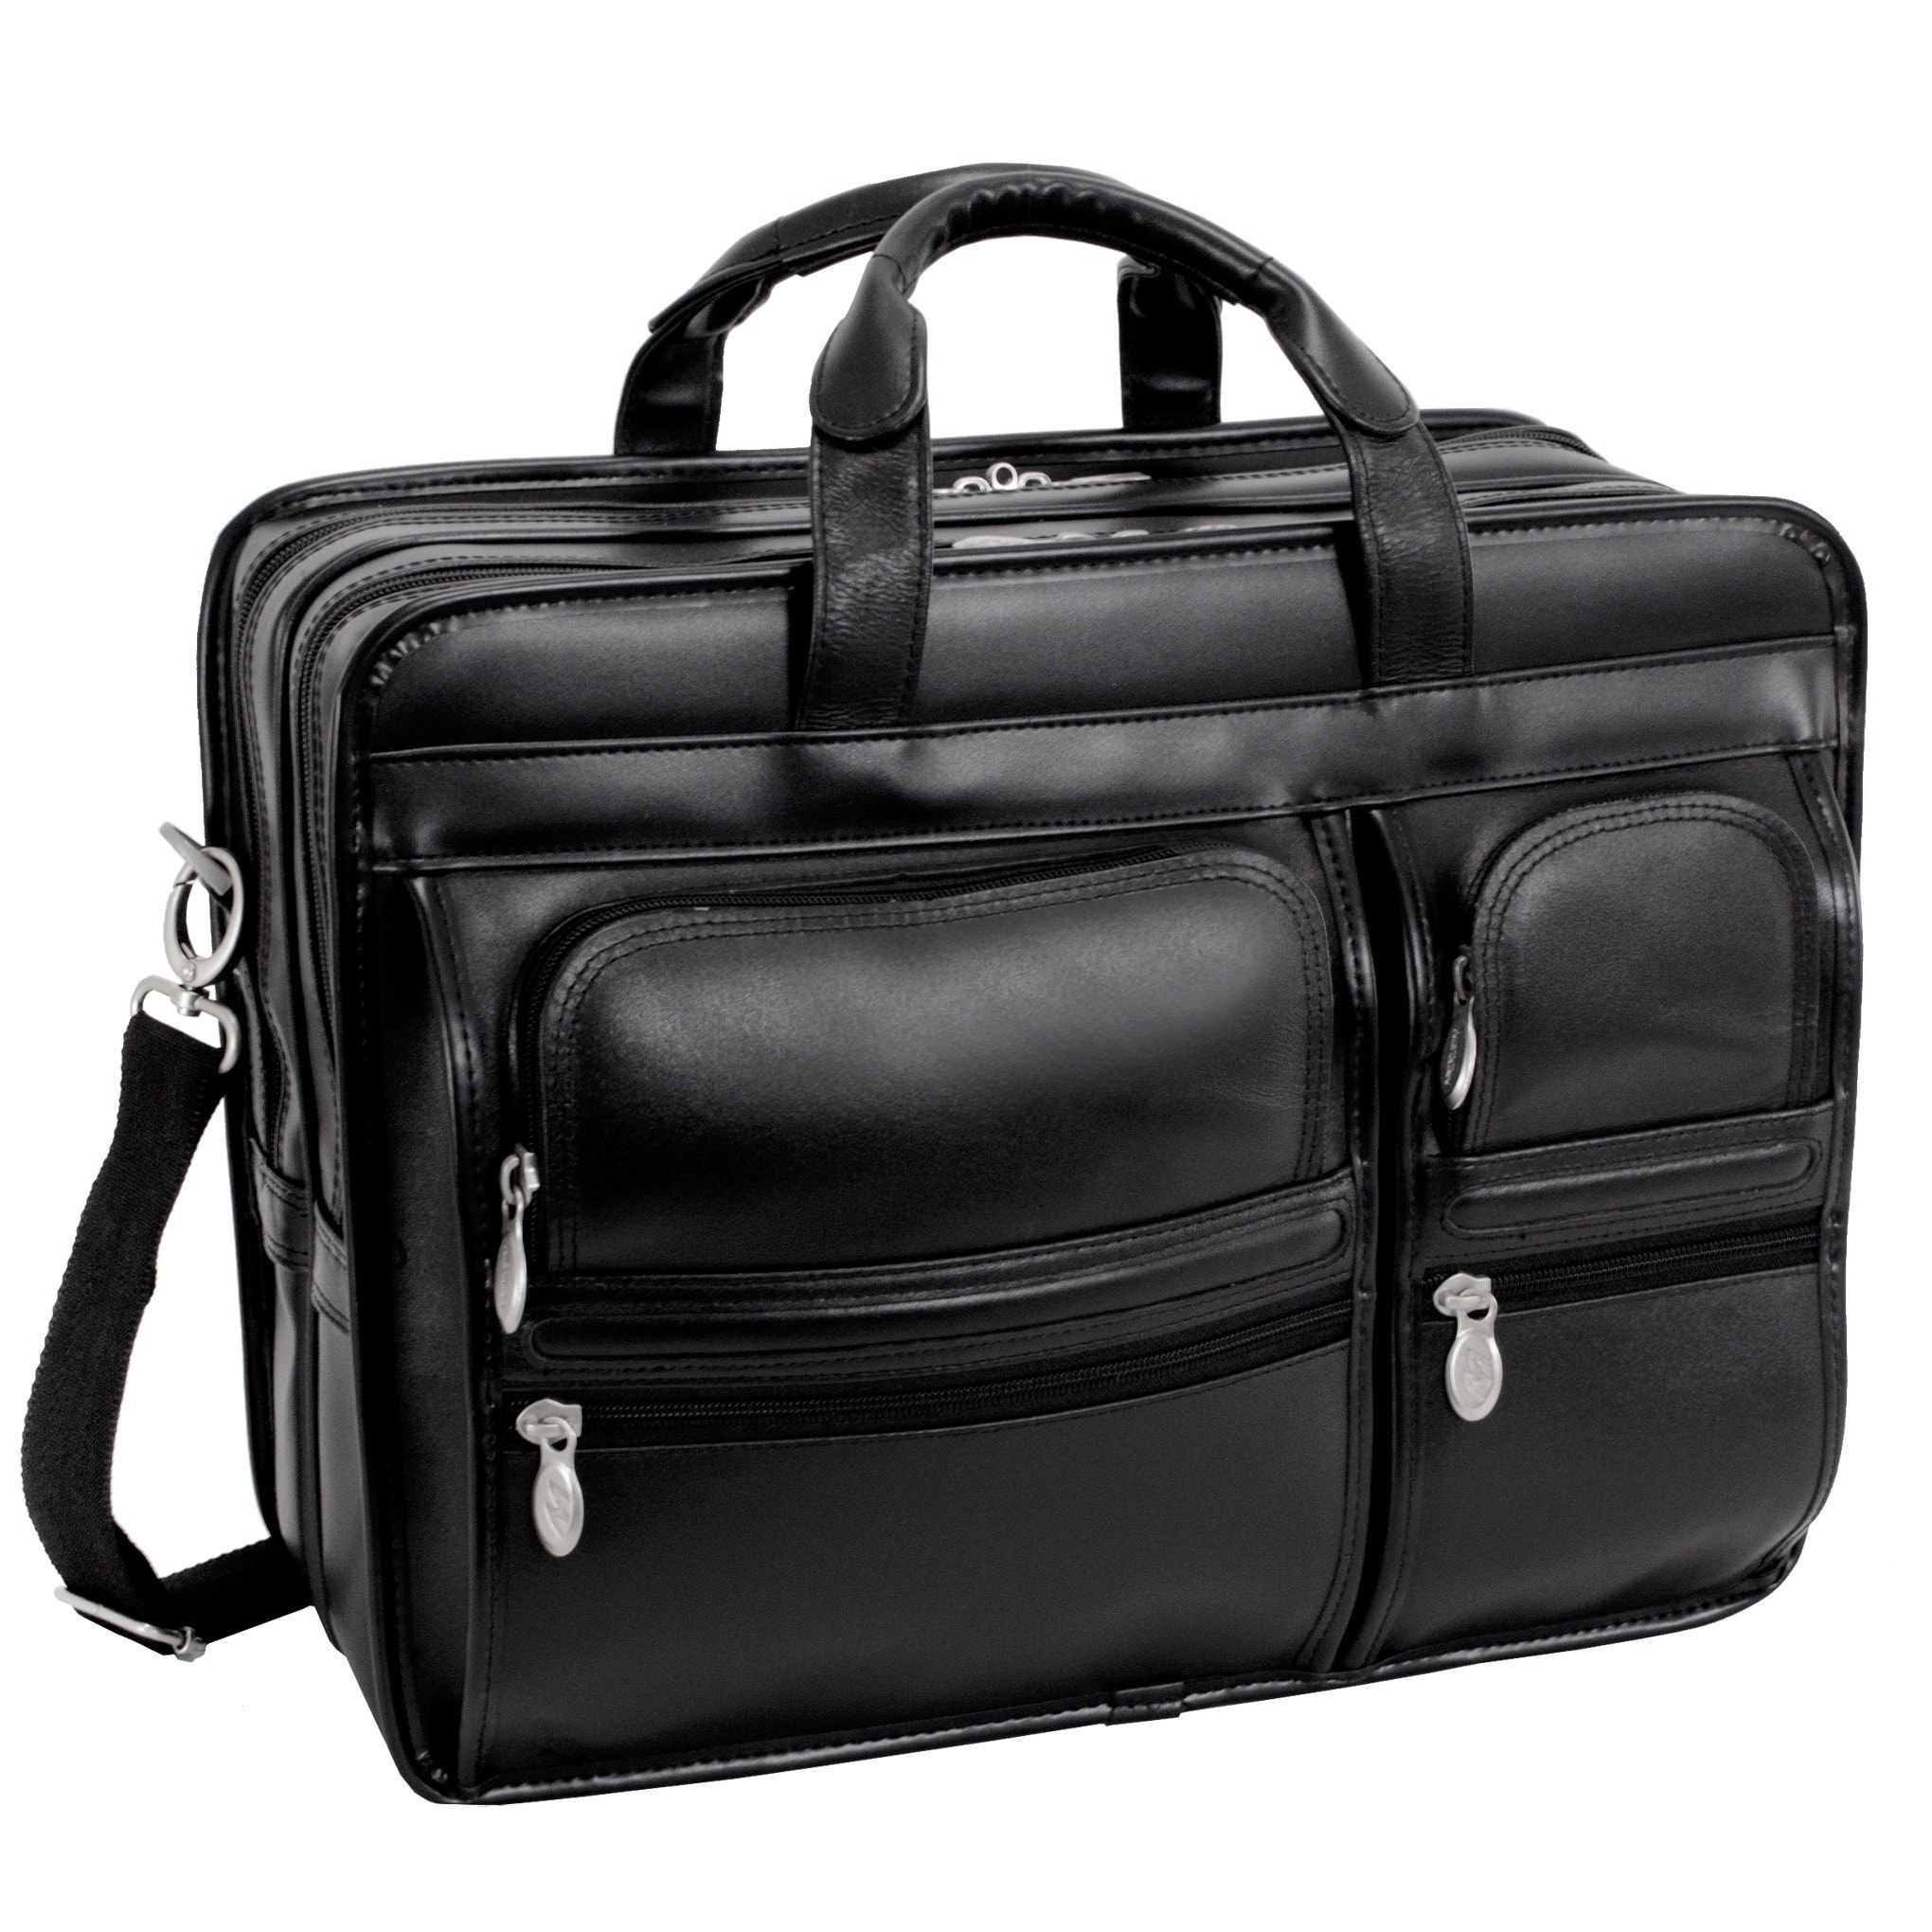 28fcb6d3801 Shop McKlein Black Clinton 17in. Detachable-Wheeled Laptop Case - Free  Shipping Today - Overstock.com - 3665582